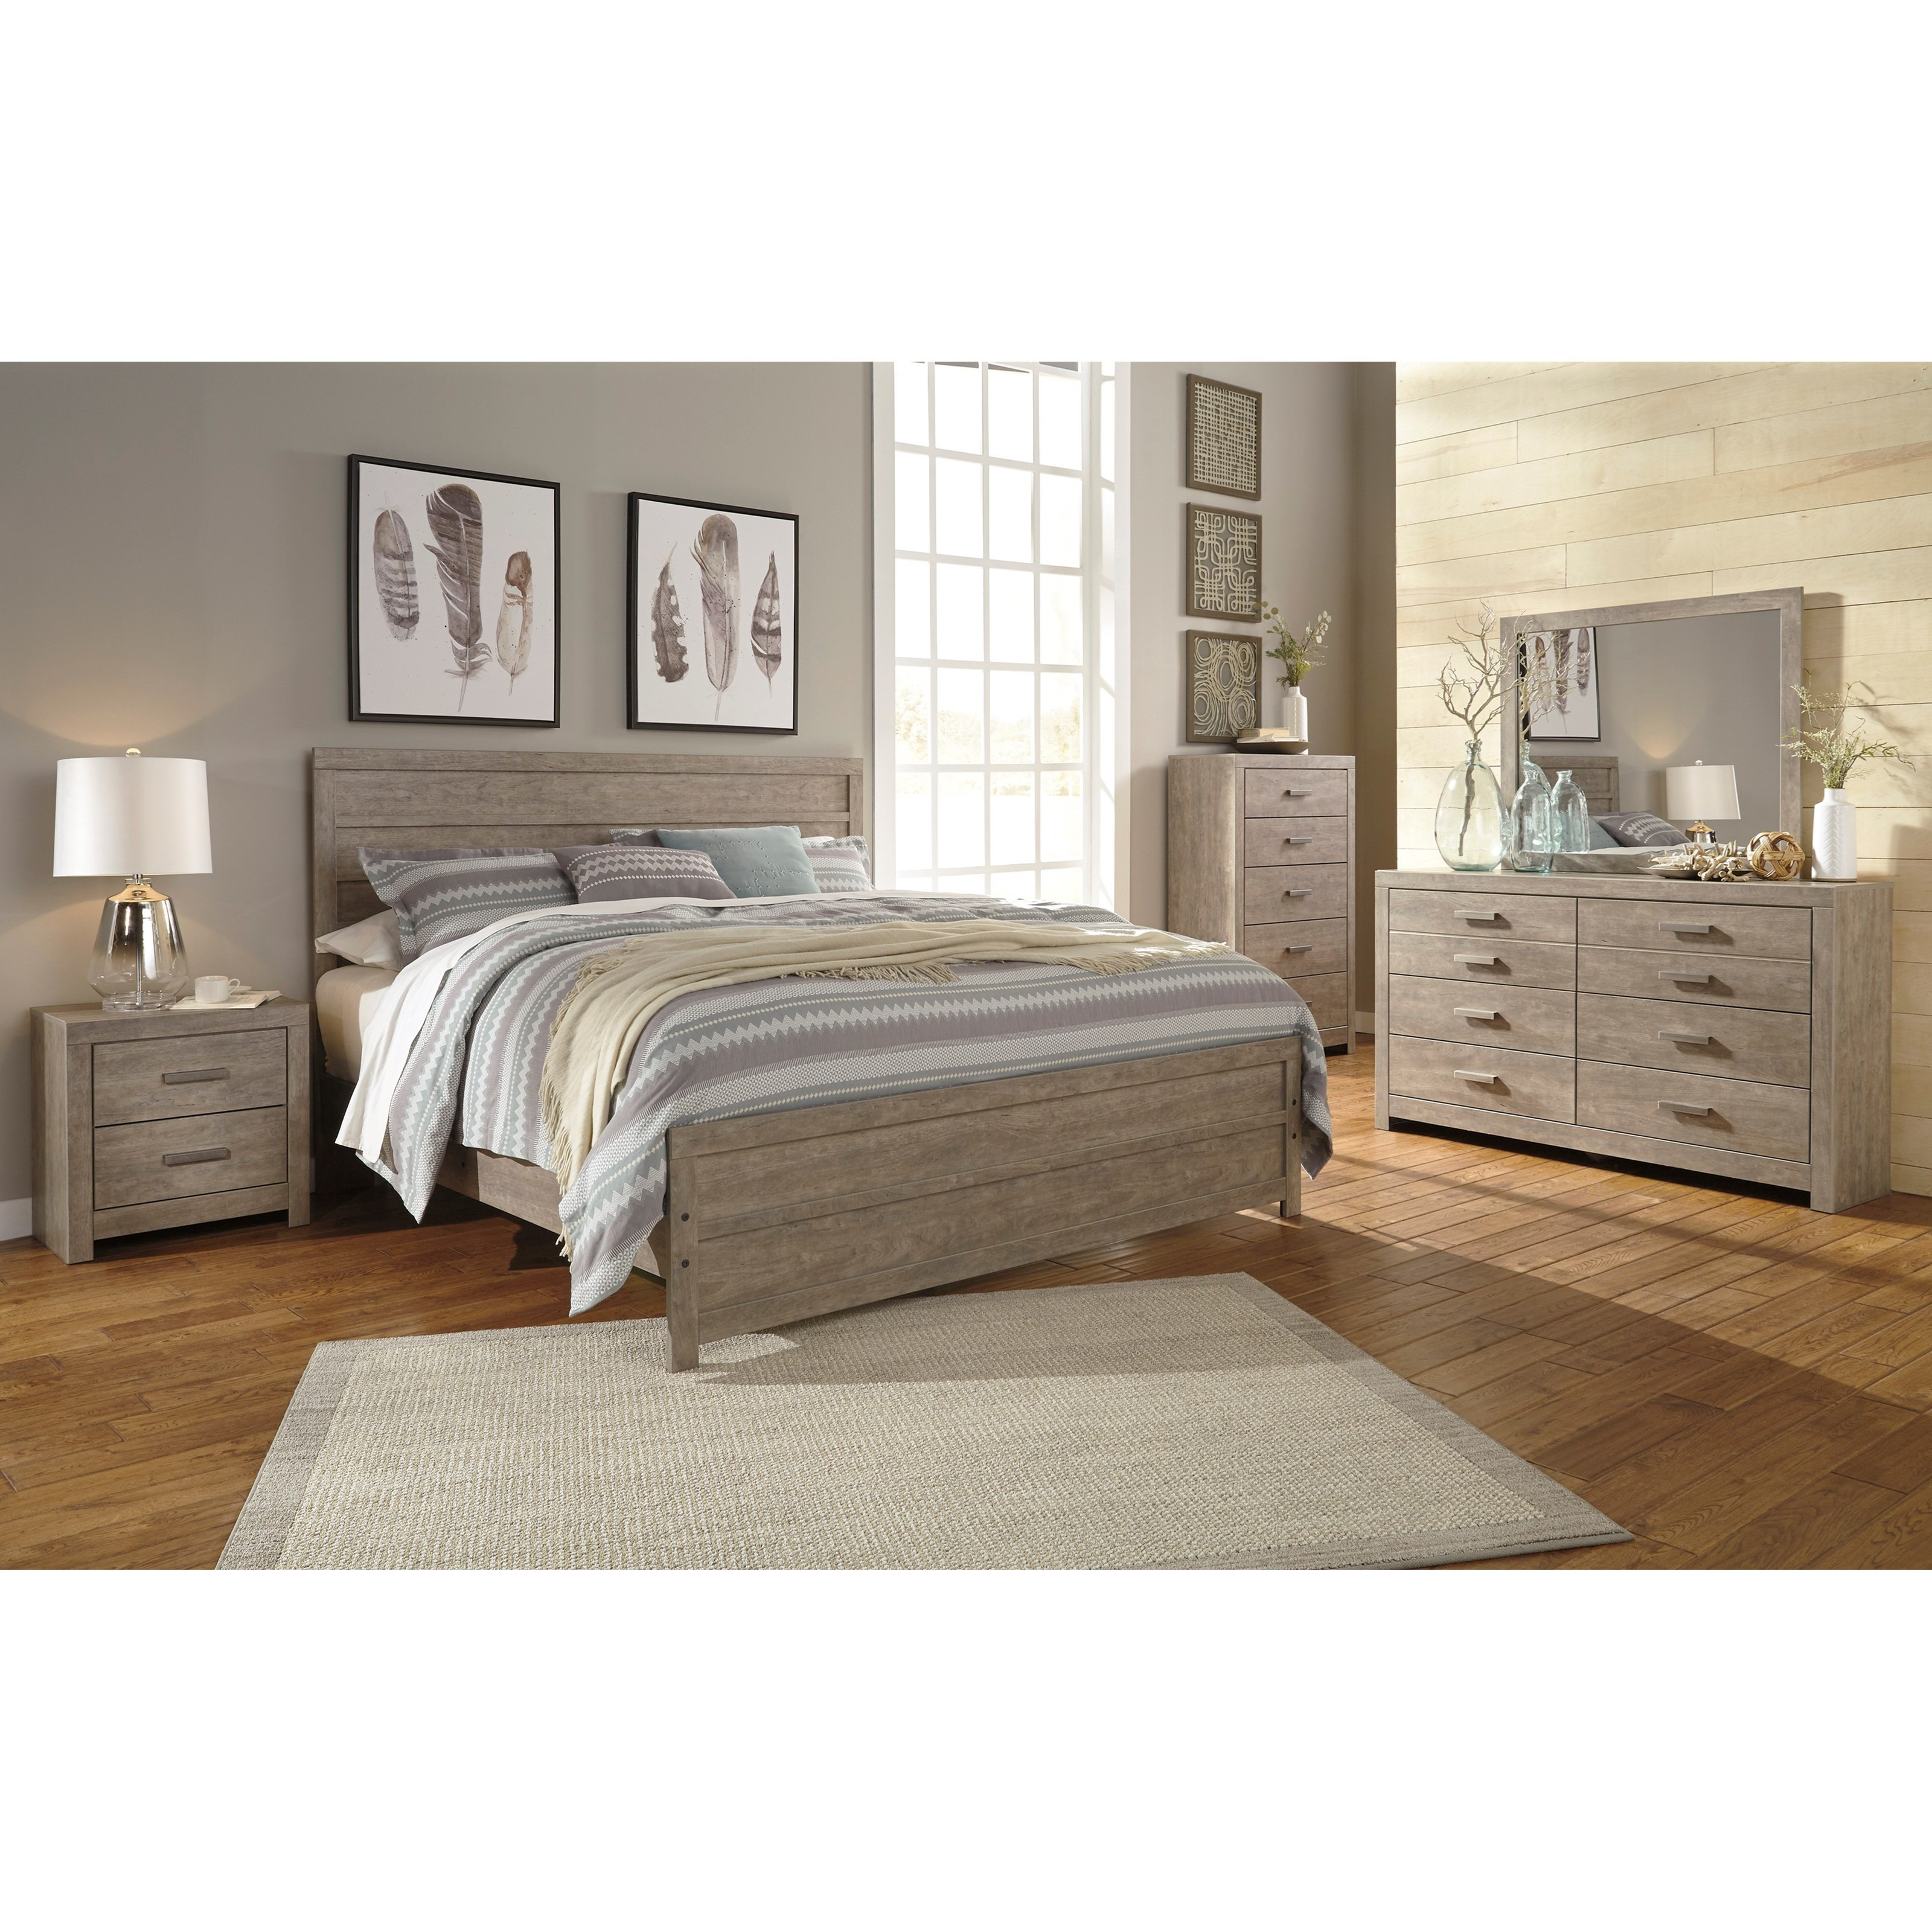 Culverbach King Bedroom Group by Signature Design by Ashley at Smart Buy Furniture